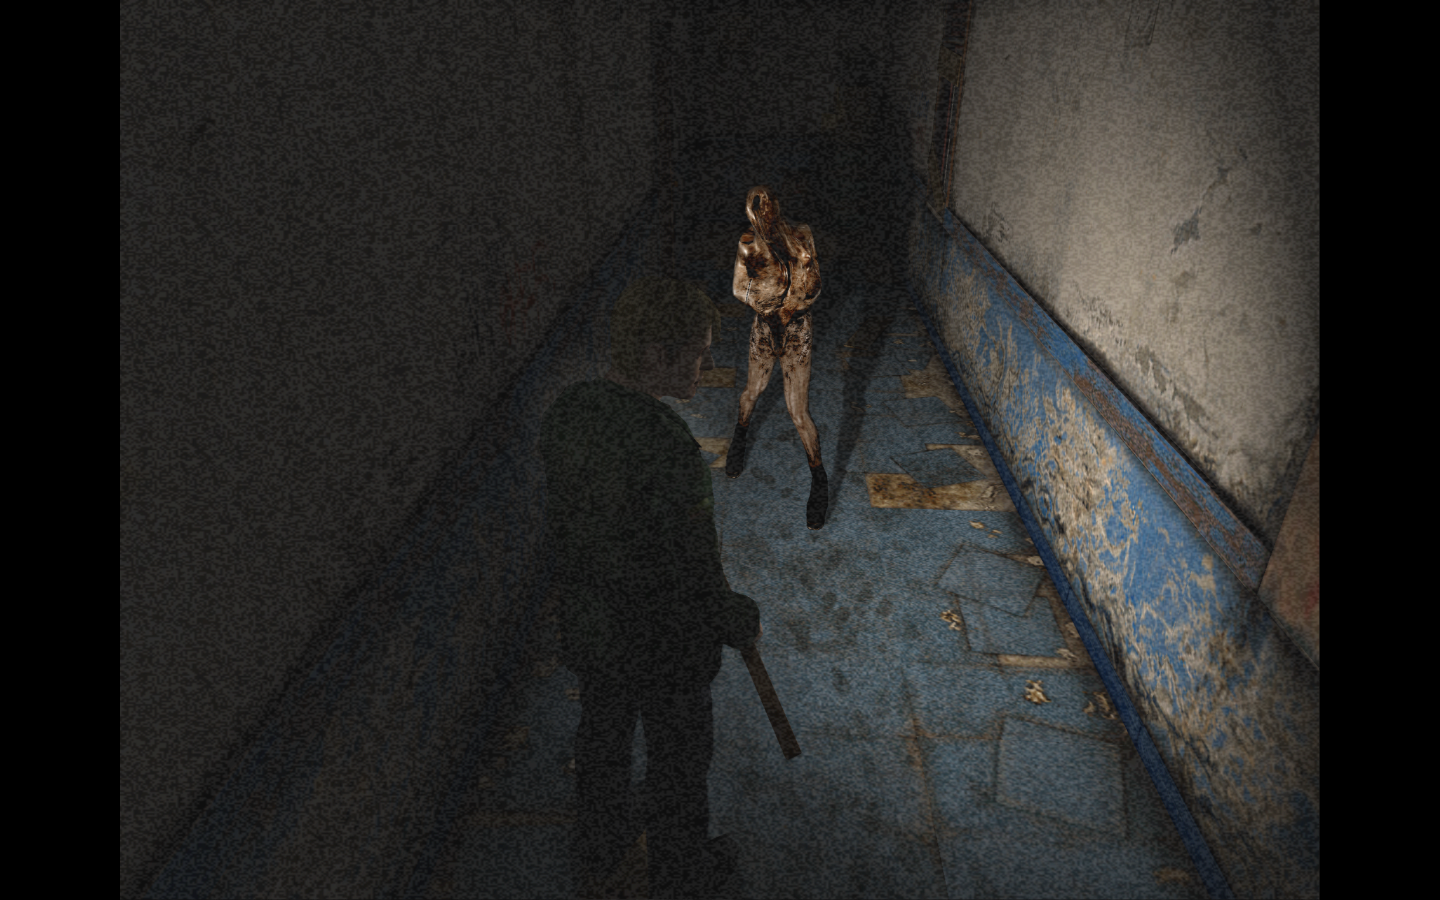 Silent Hill 2 Graphical Issues